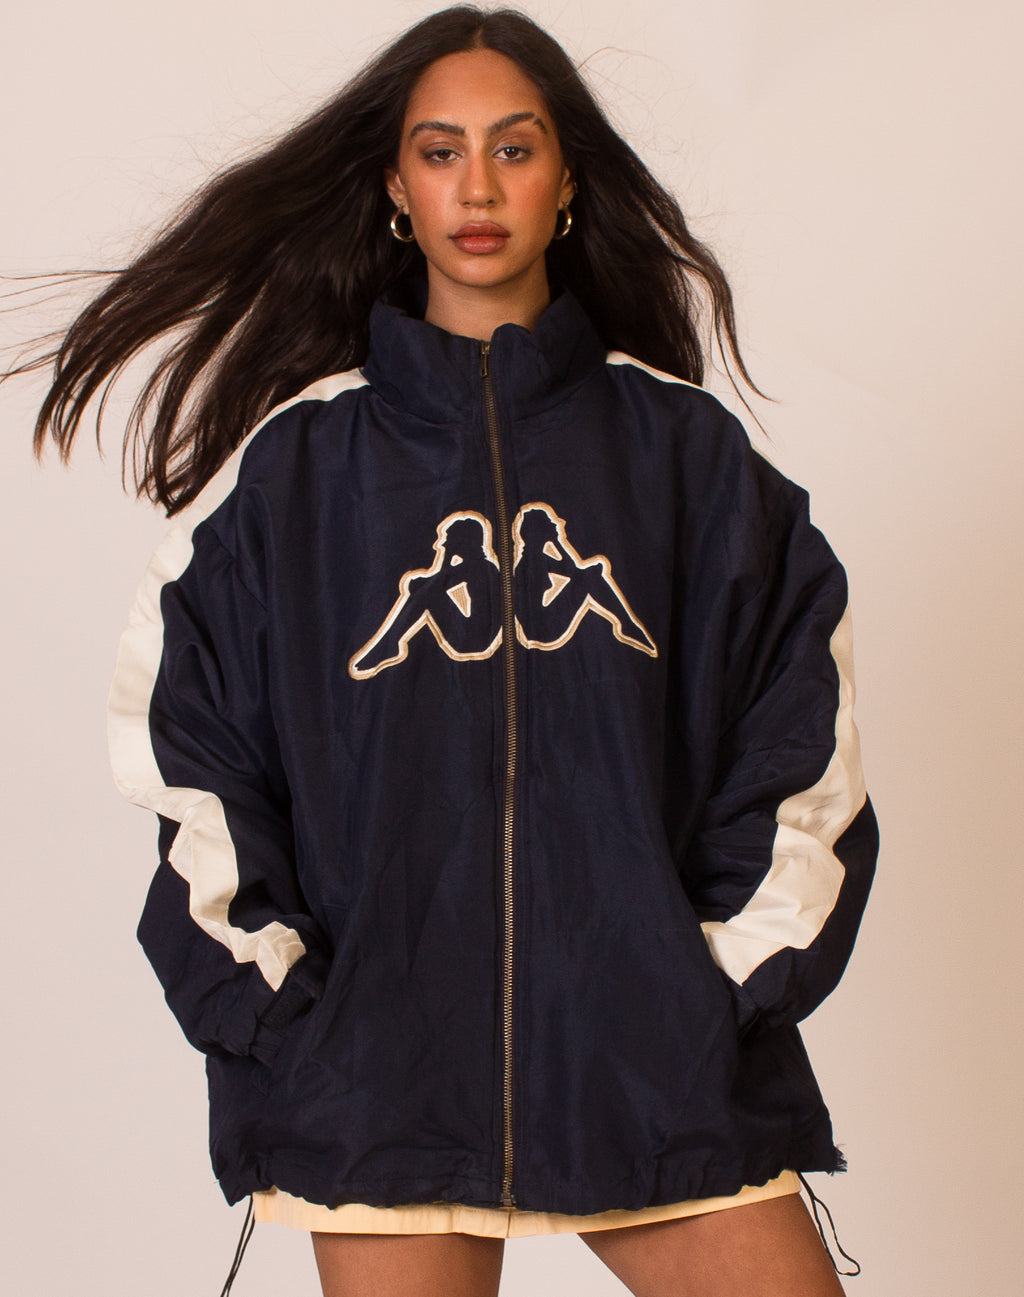 KAPPA NAVY LOGO COAT